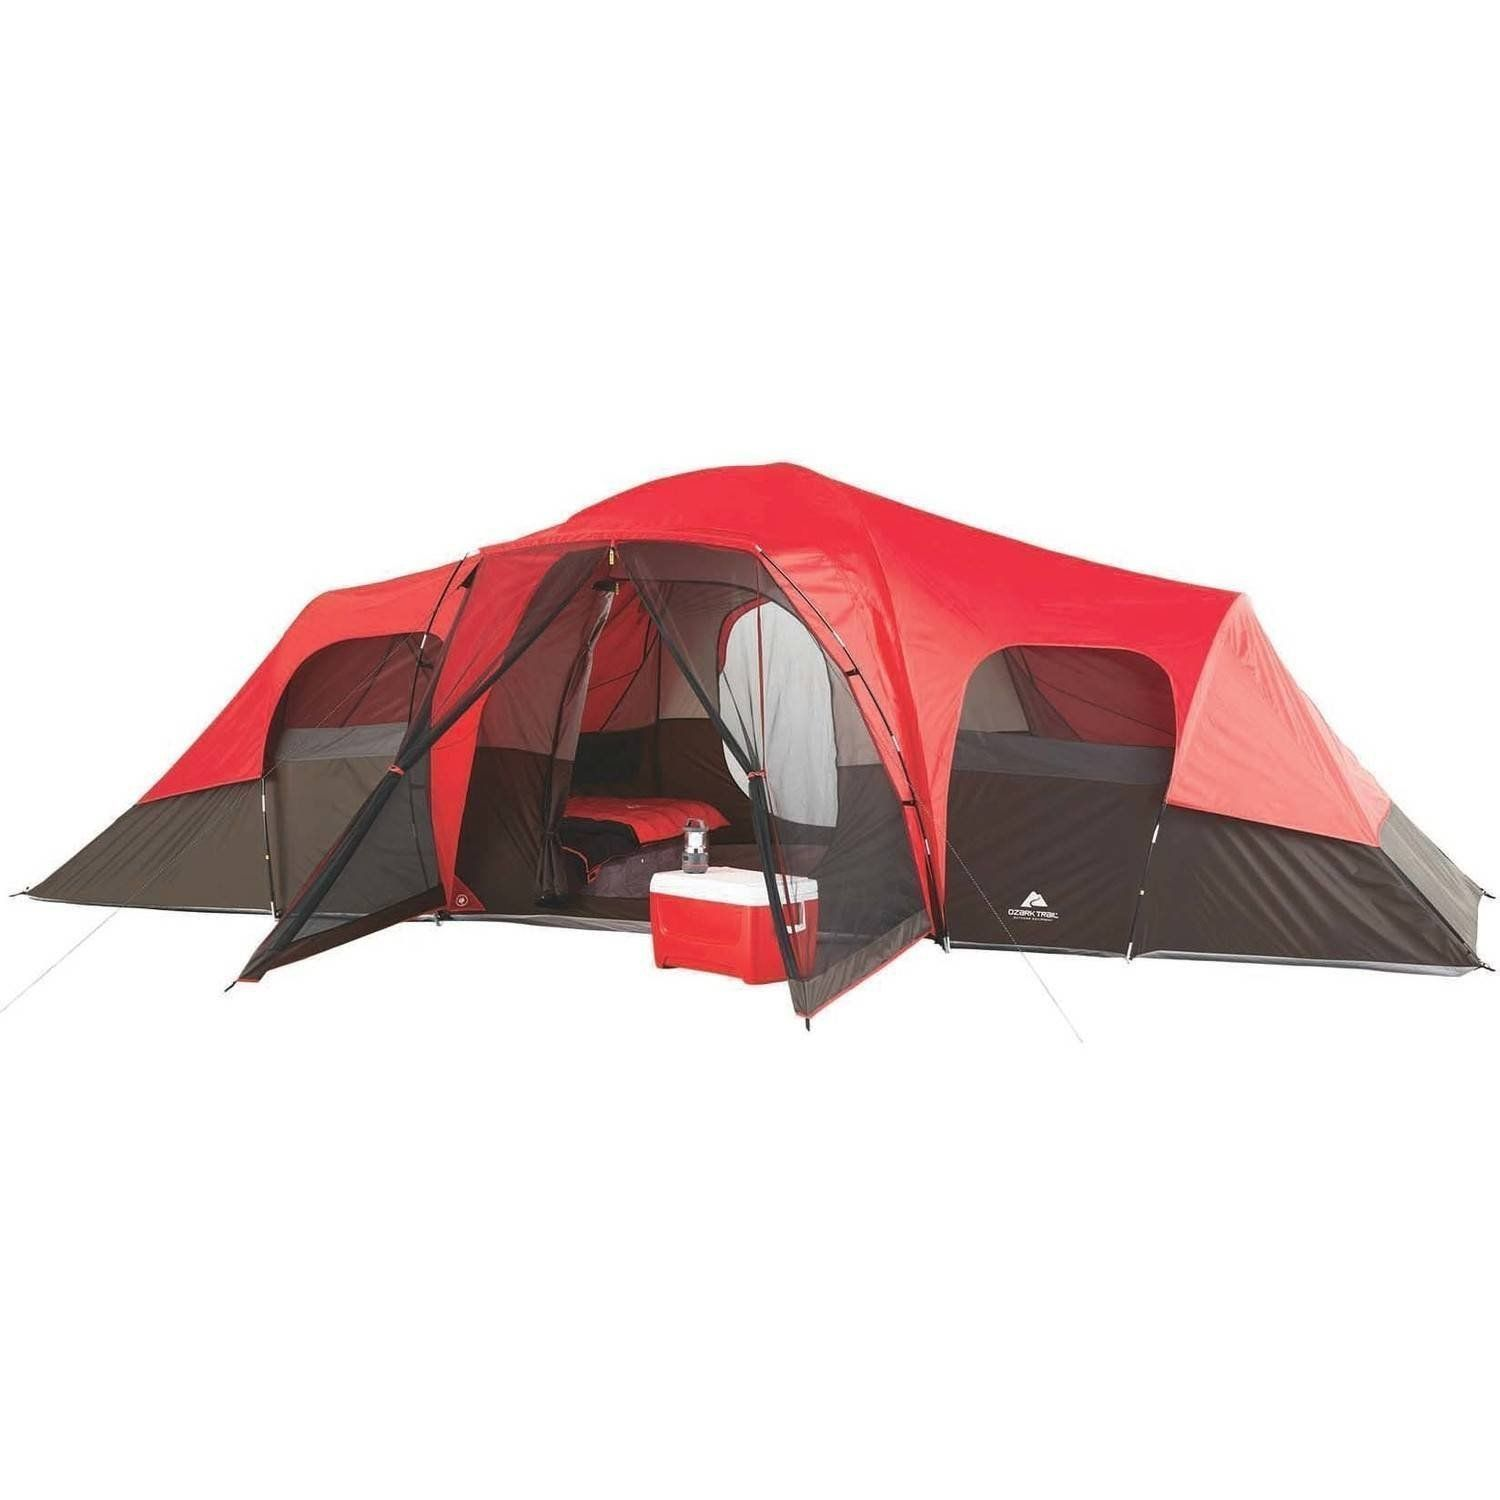 ... Gear Camping Equipment Camping Stove Camping Store Canvas Tents Camping  Tent Camping Supplies 4 Man Tent Family Tents Cheap Tents Cabin Tents Big  ...